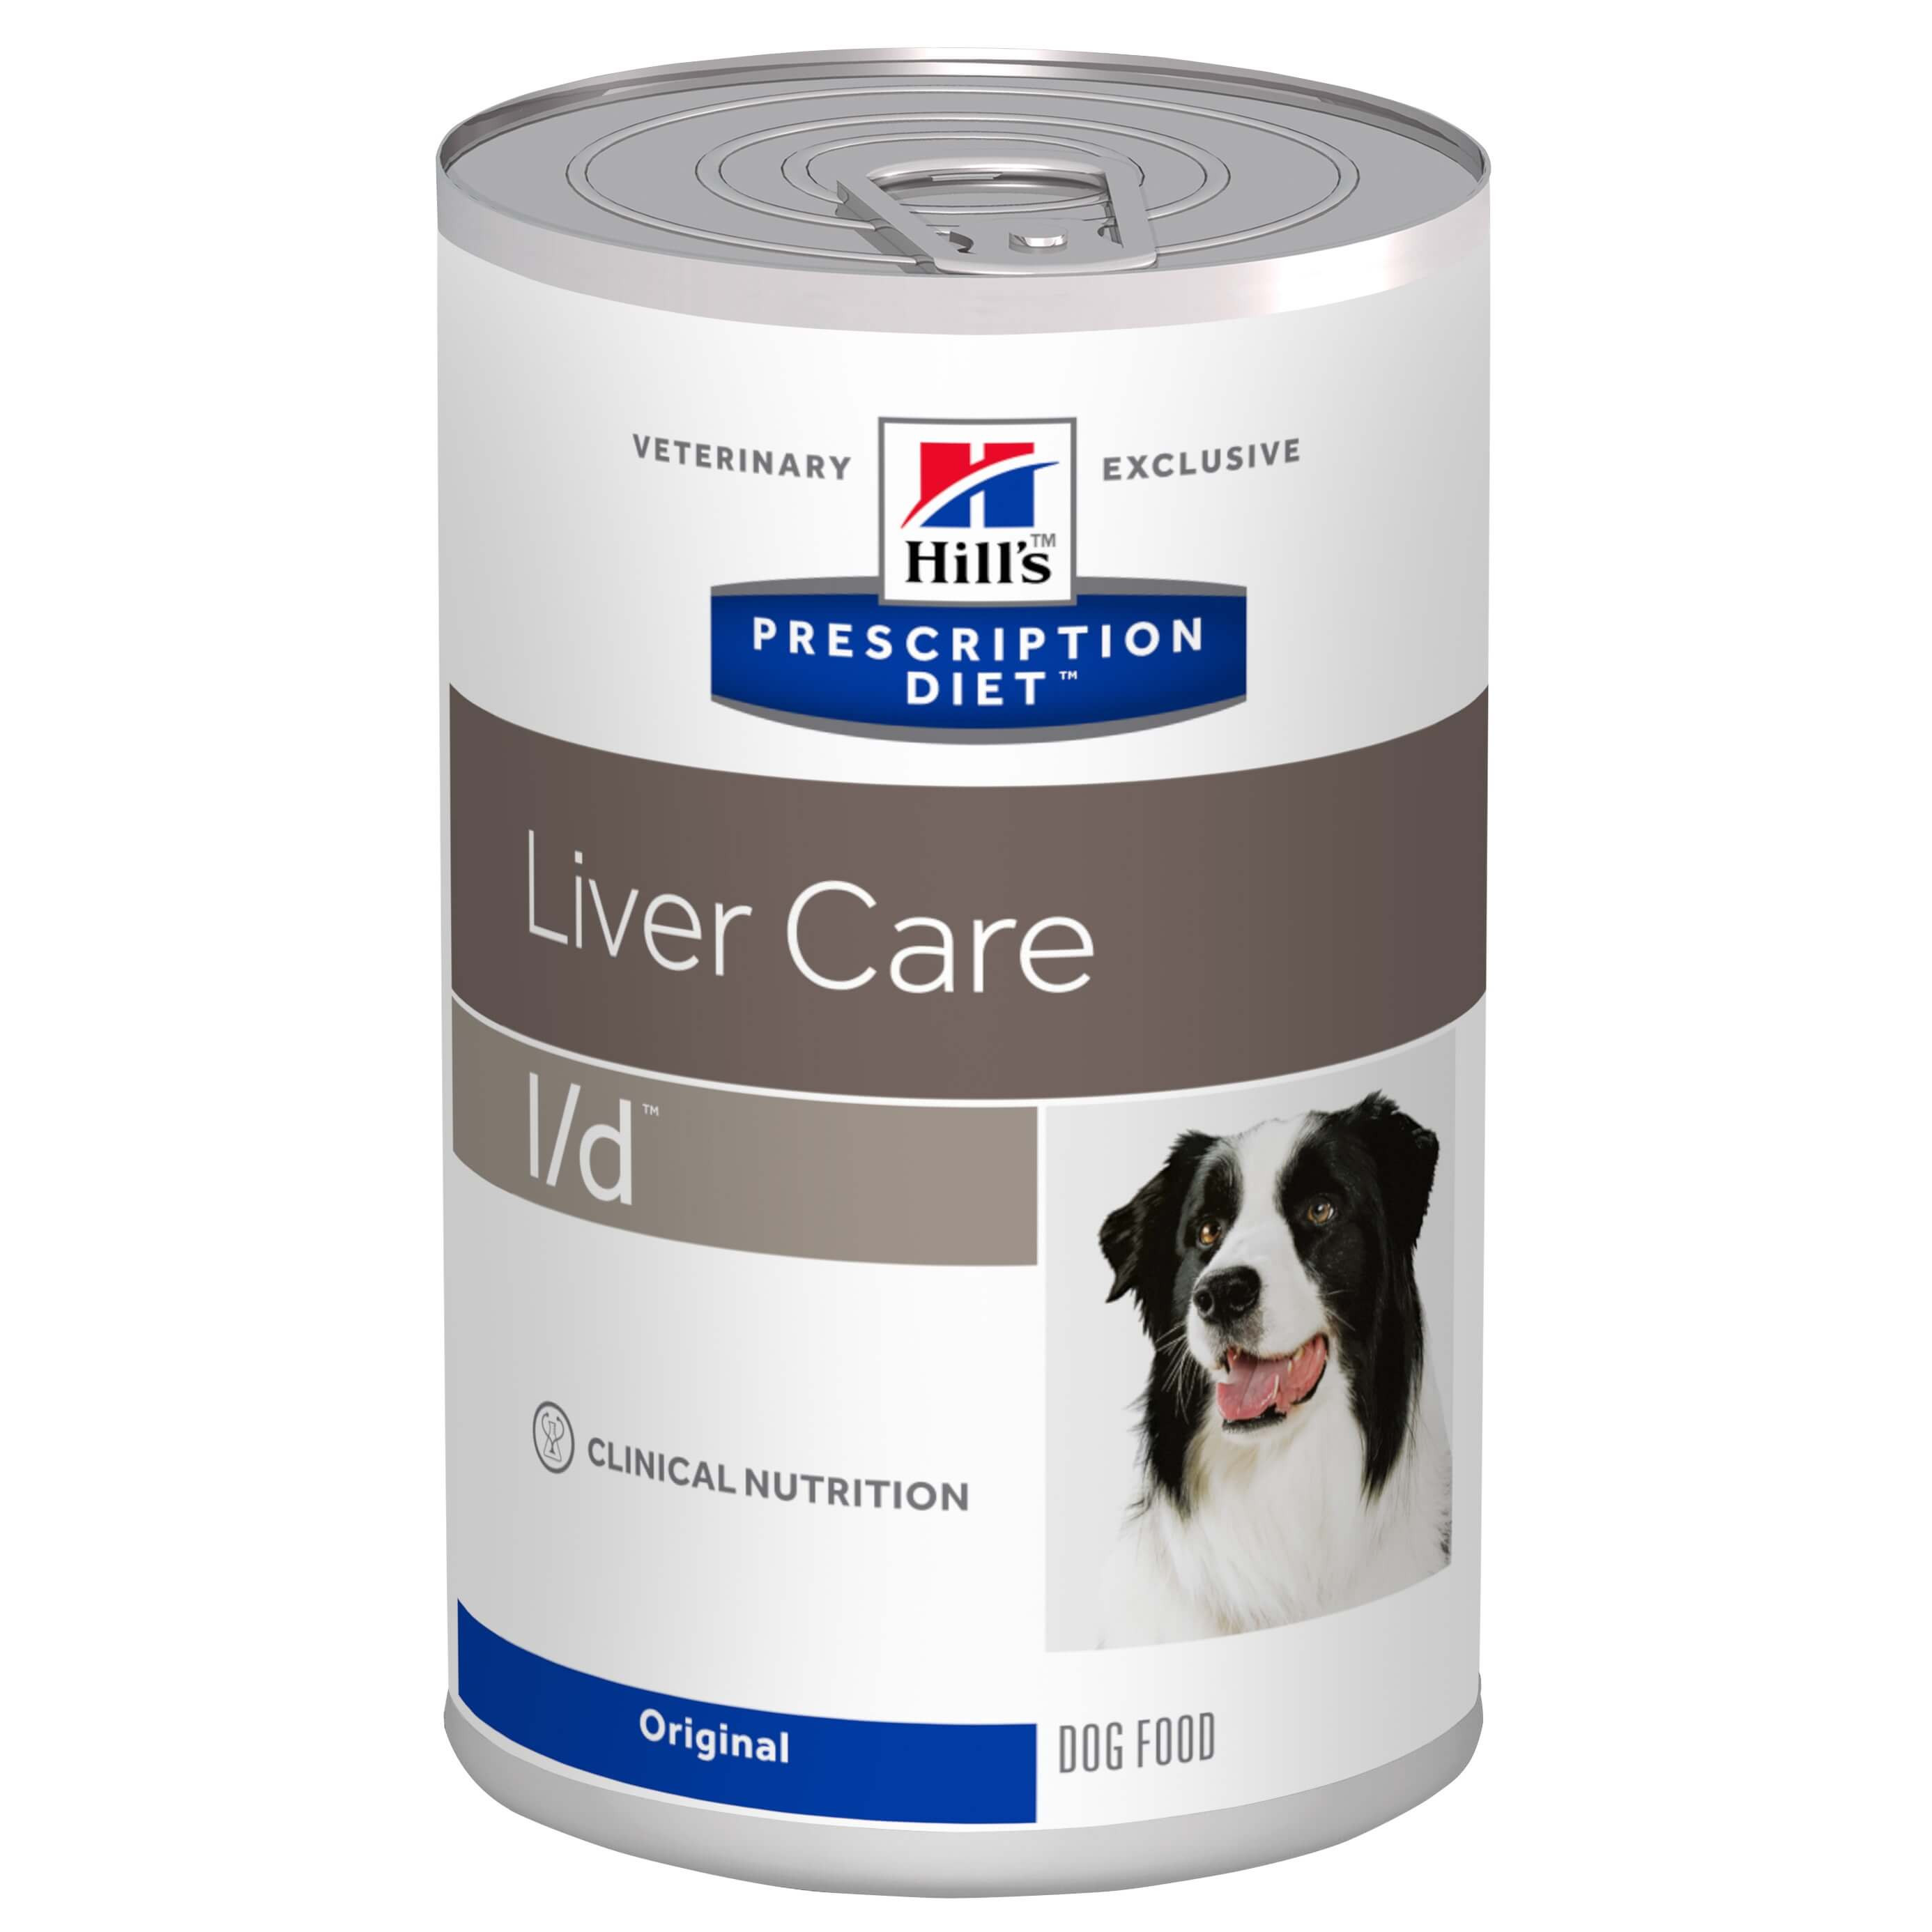 Hill's Prescription L/D (l/d) Liver Care dåse hundefoder